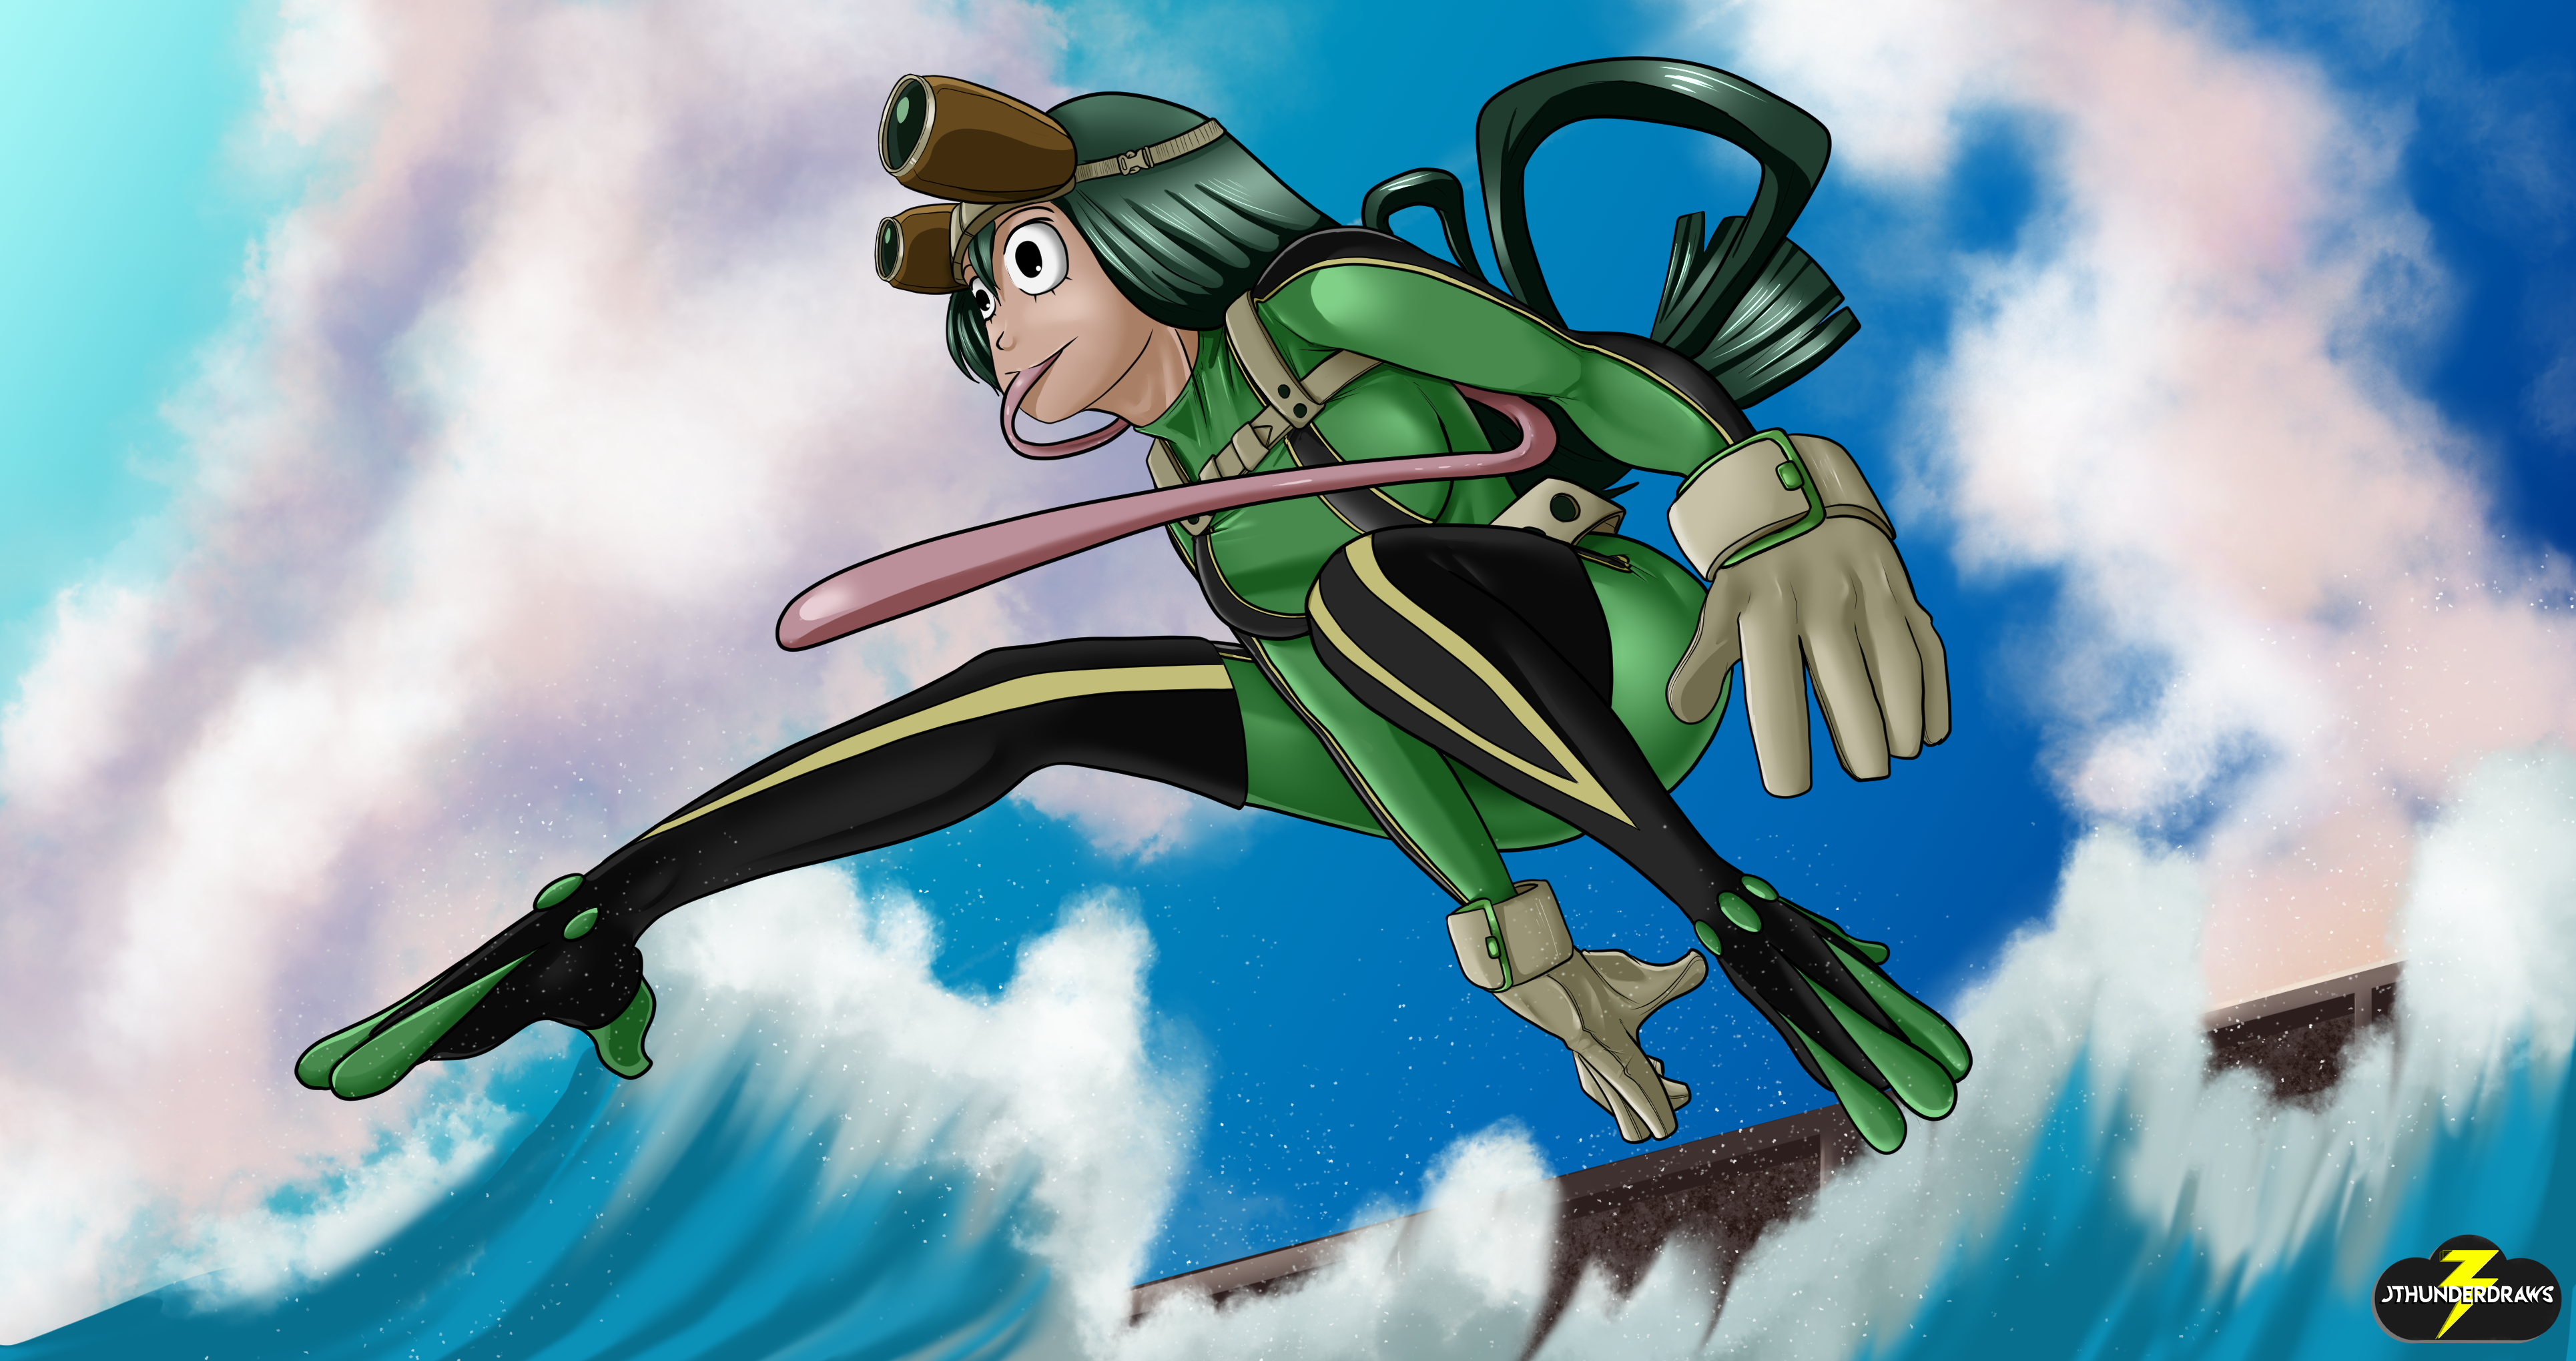 Froppy Leaps Into Action!